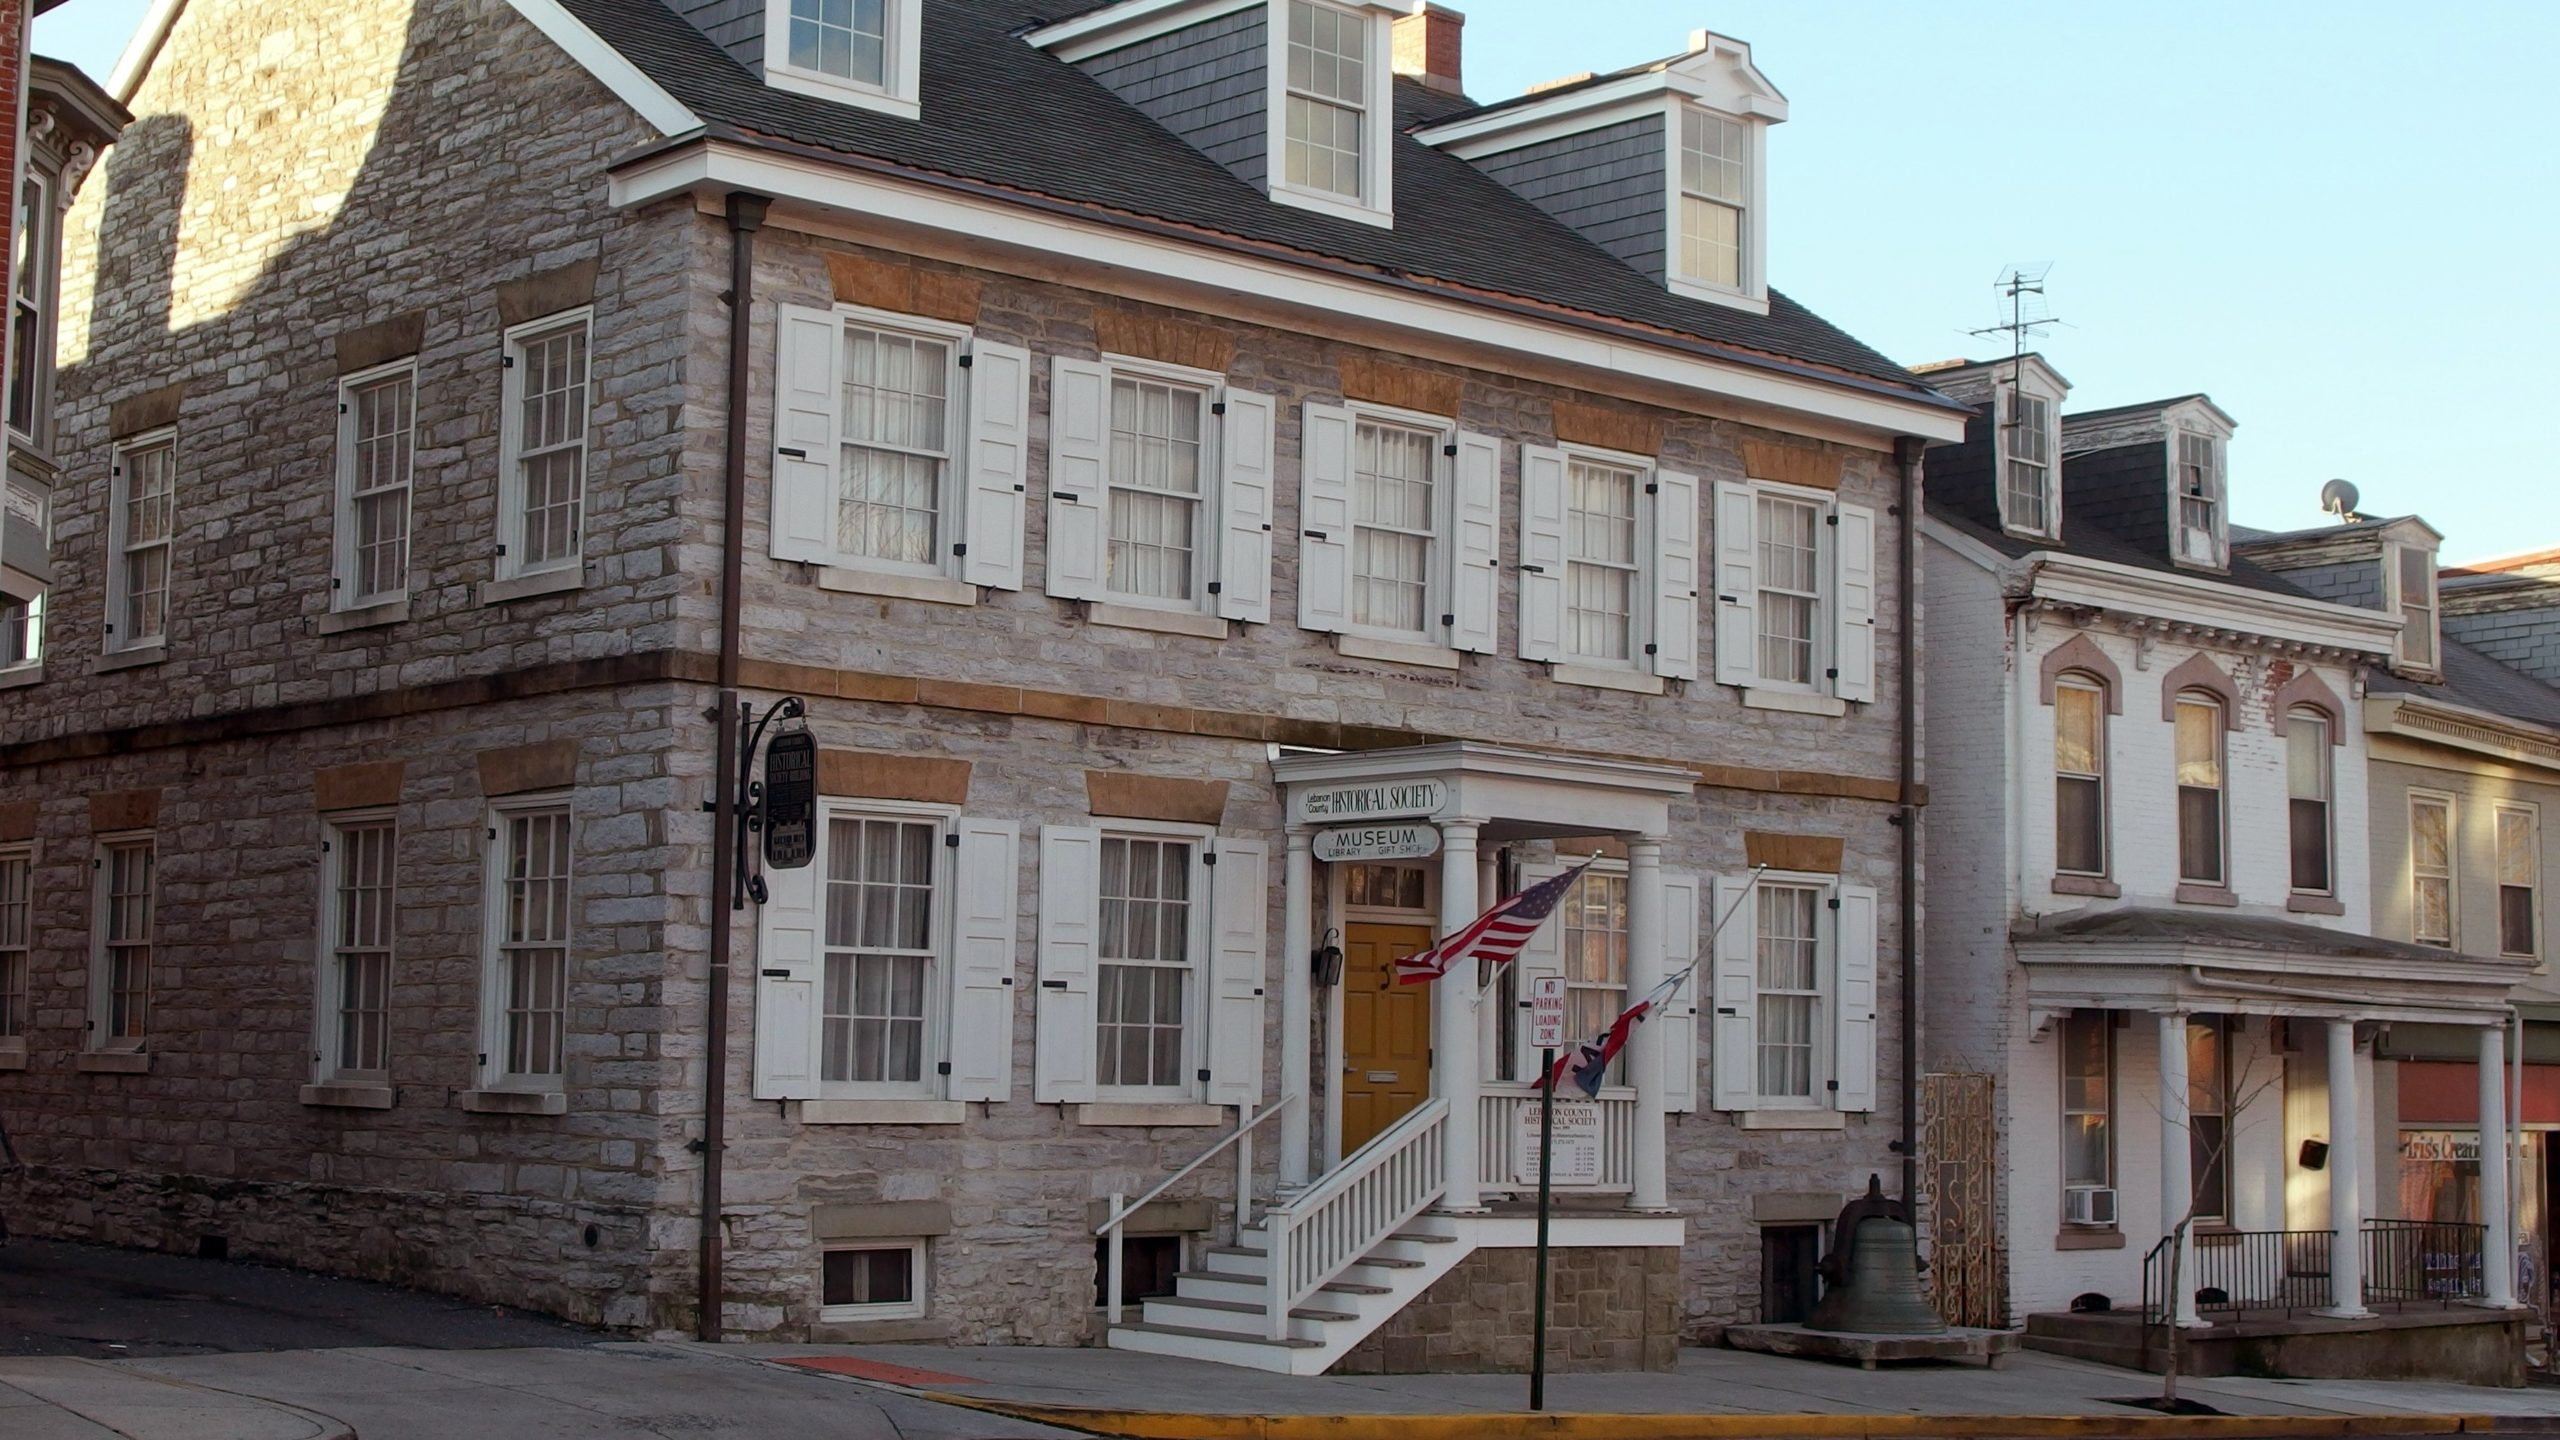 Here's what the Lebanon County Historical Society has planned for 2020